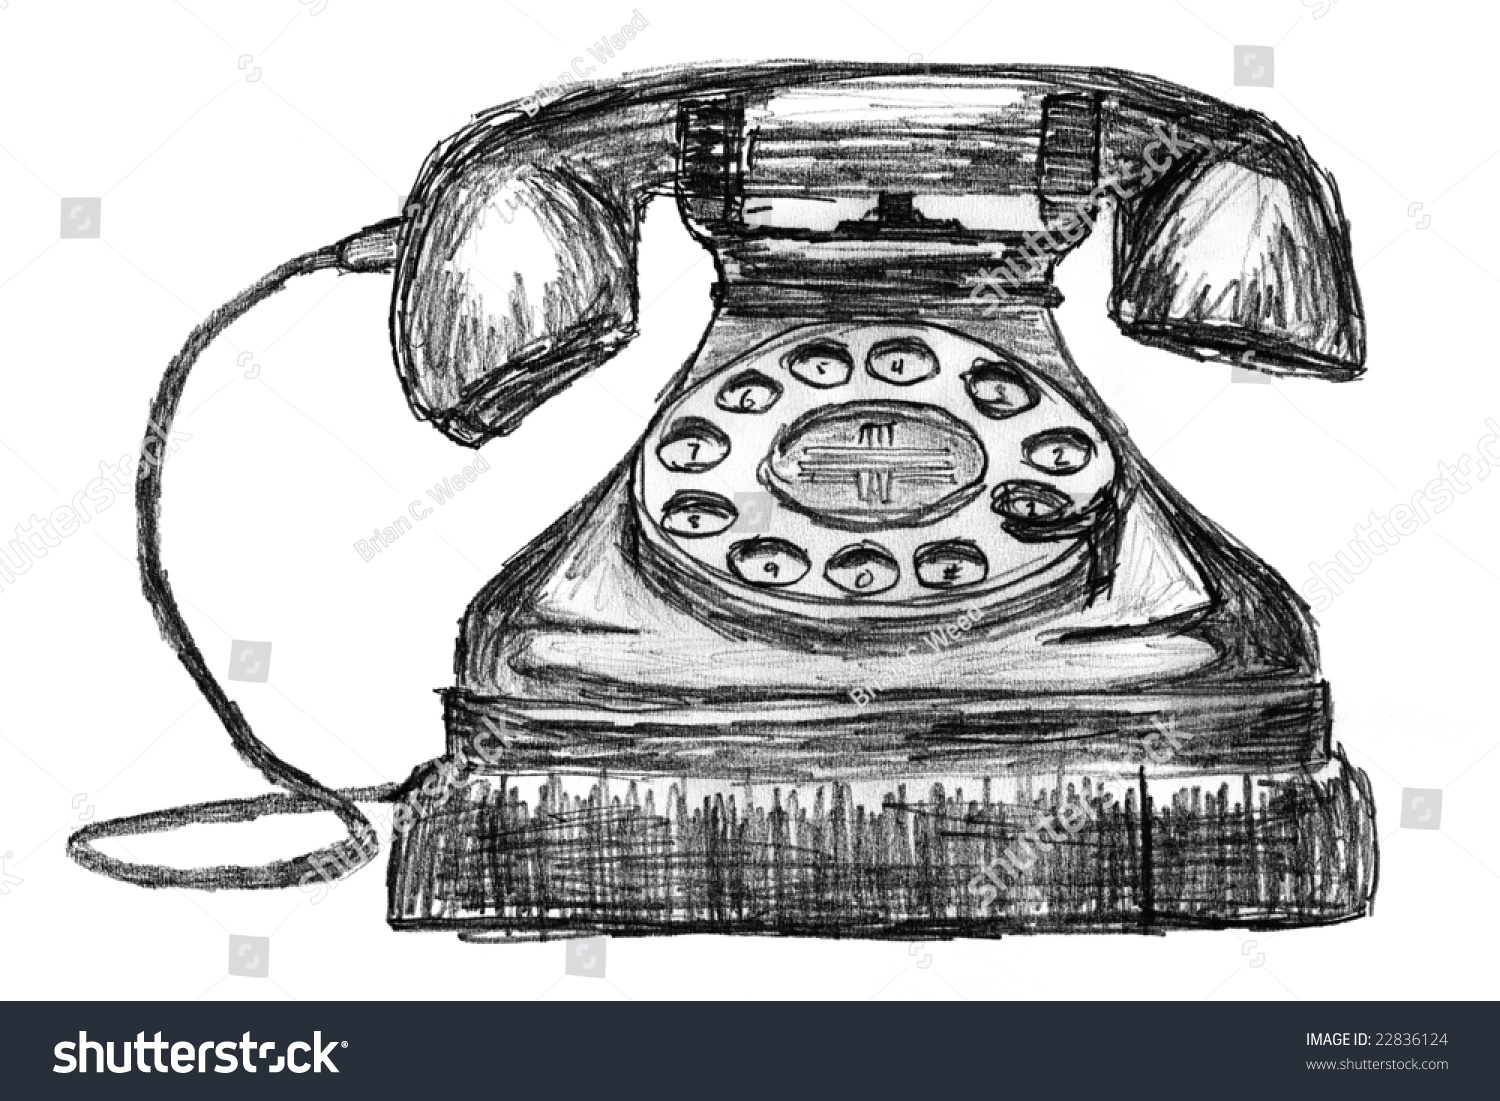 Pencil sketch of a vintage telephone stock photo 22836124 avopix com